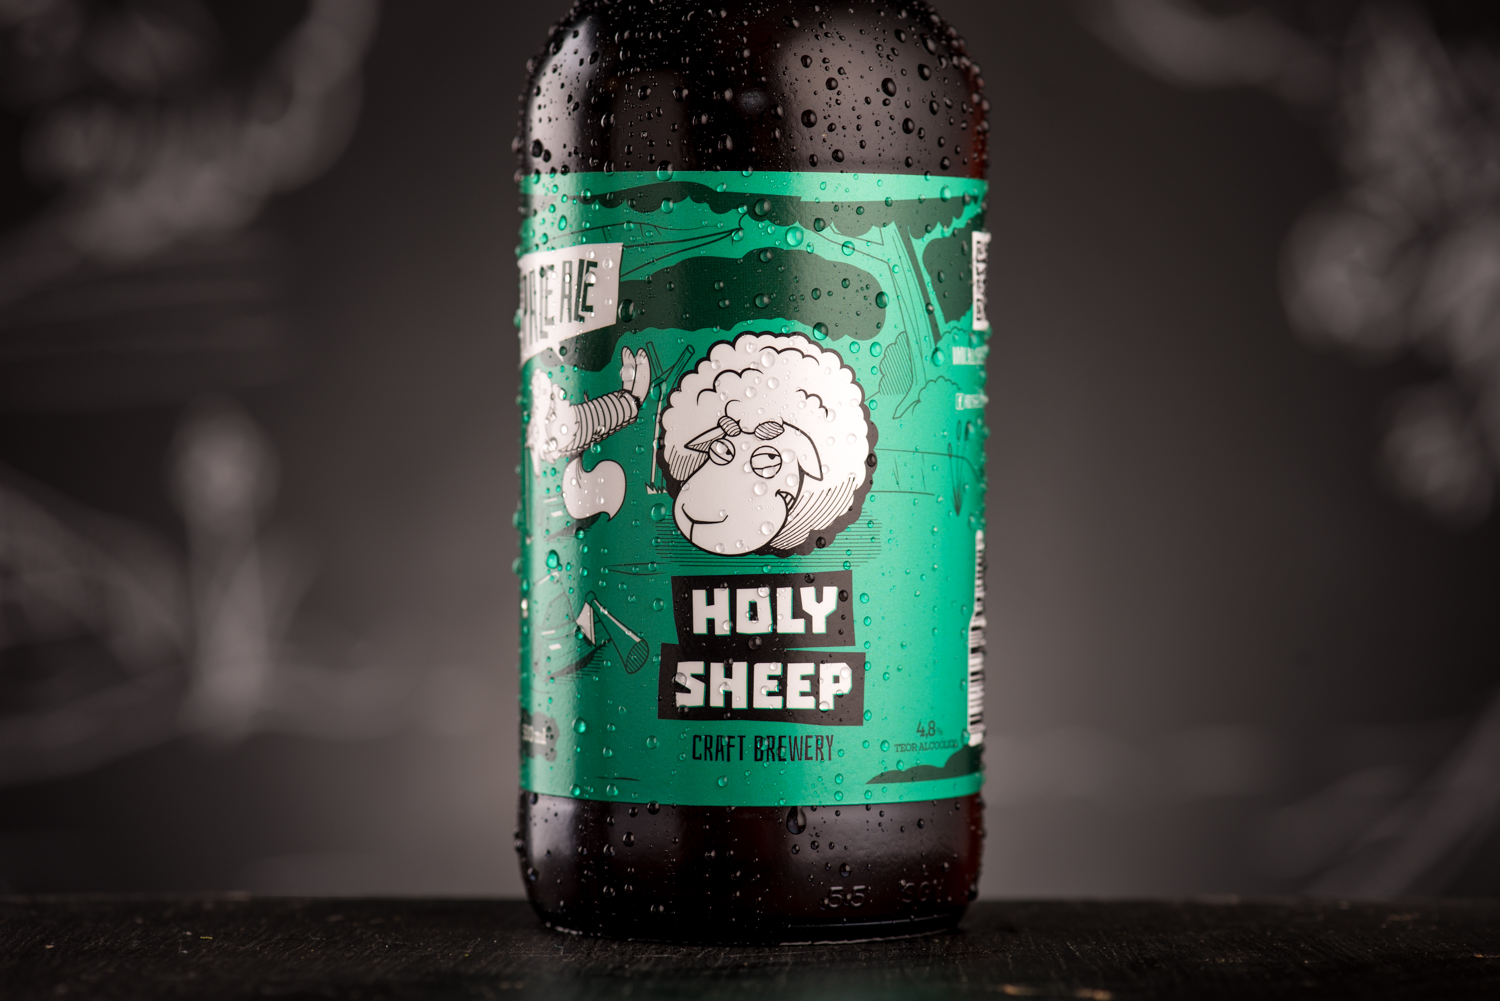 cerveja-artesanal-holy-sheep-rotulo-verde